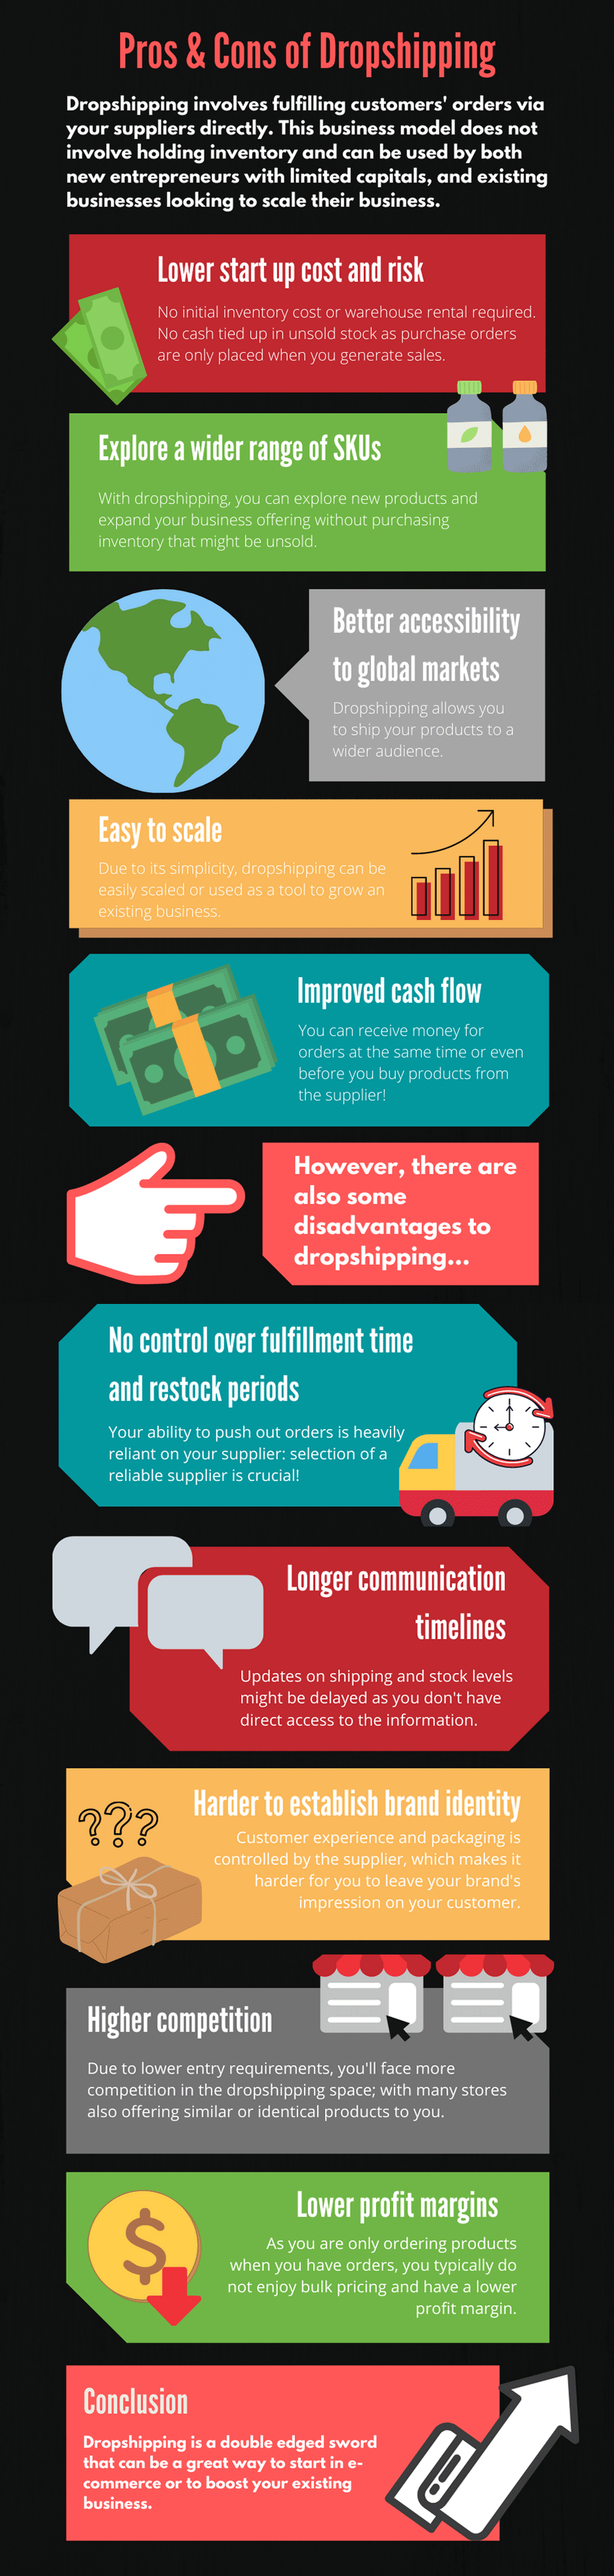 Dropshipping has various pros and cons, covered in this infographic.